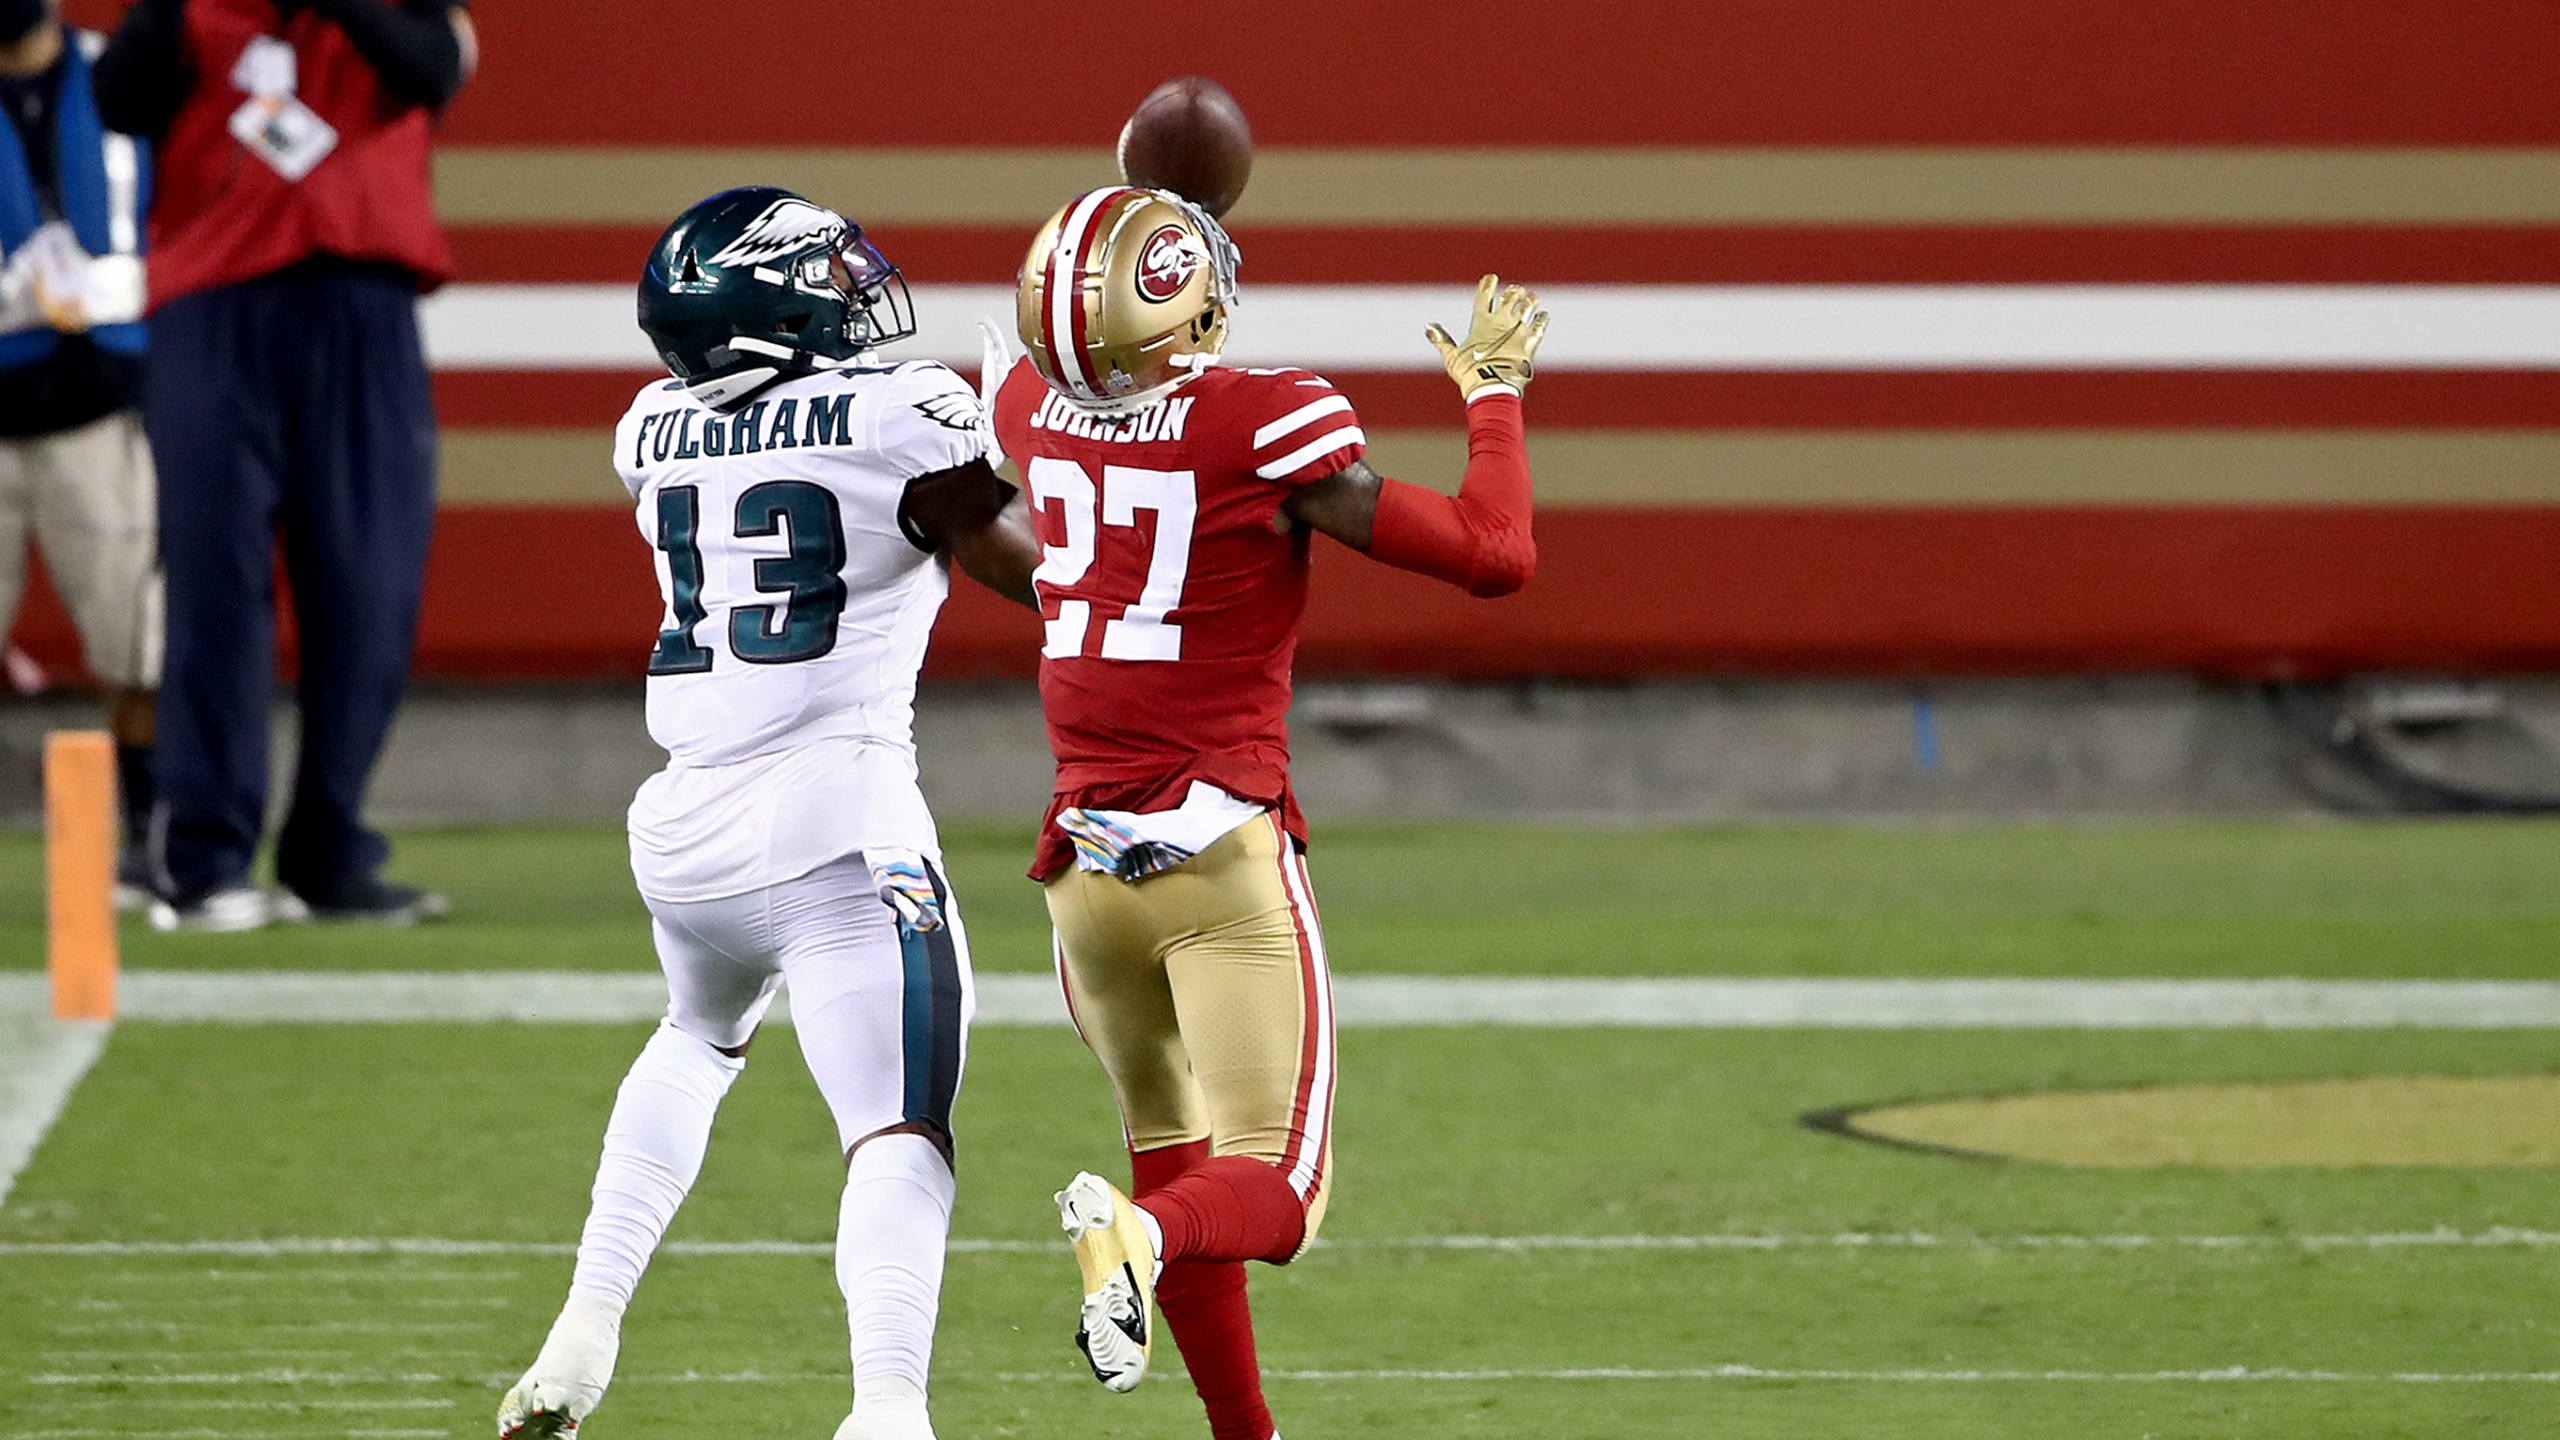 Video Former Odu Wideout Fulgham Scores First Nfl Touchdown In Eagles Win Wavy Com